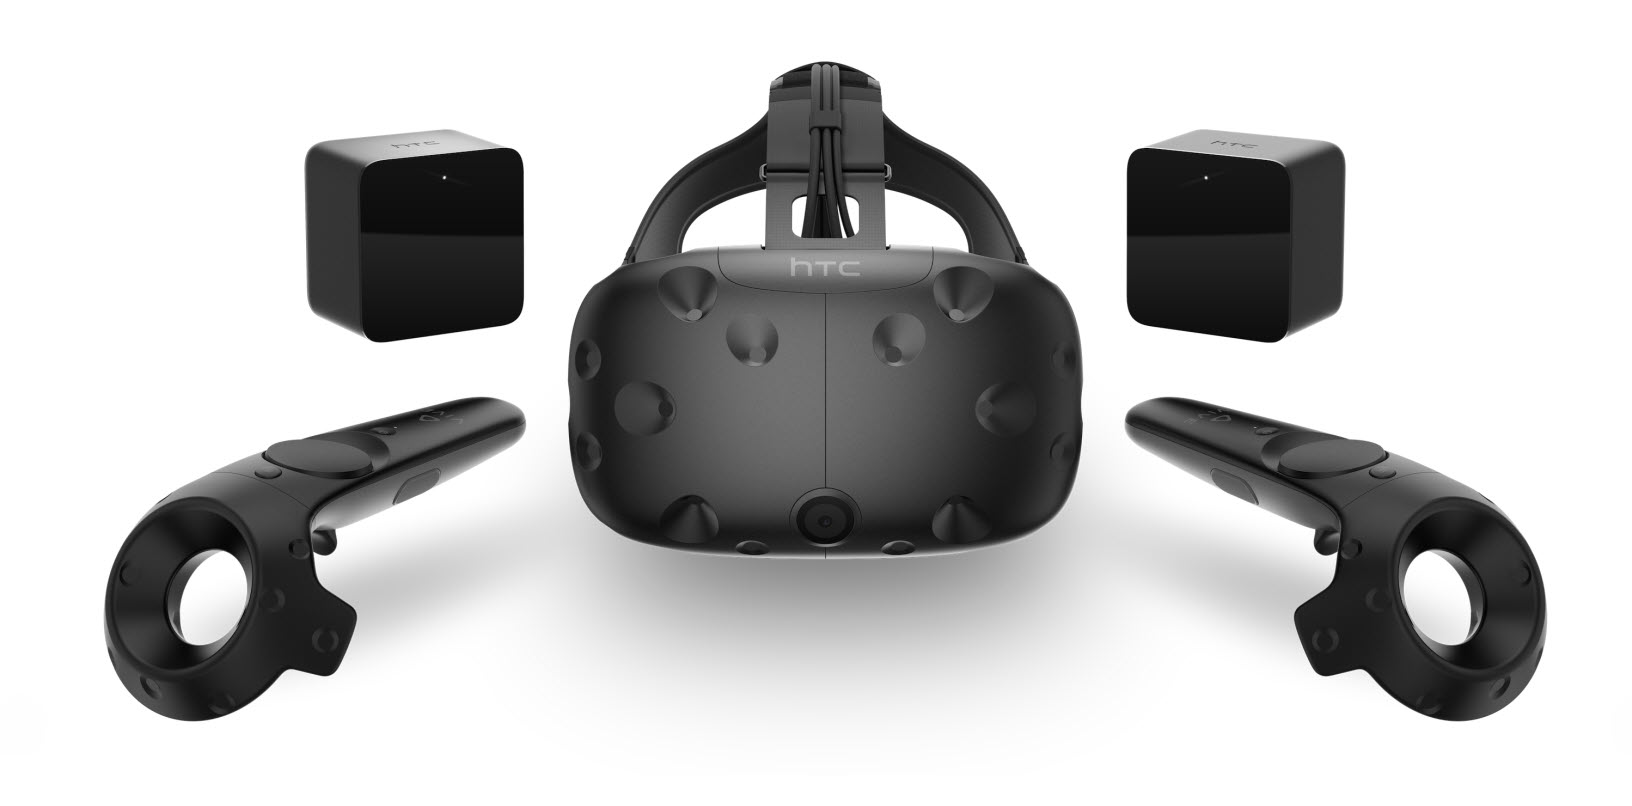 HTC-Vive-Rental-VR-Virtual-Reality-Toronto-eweb360